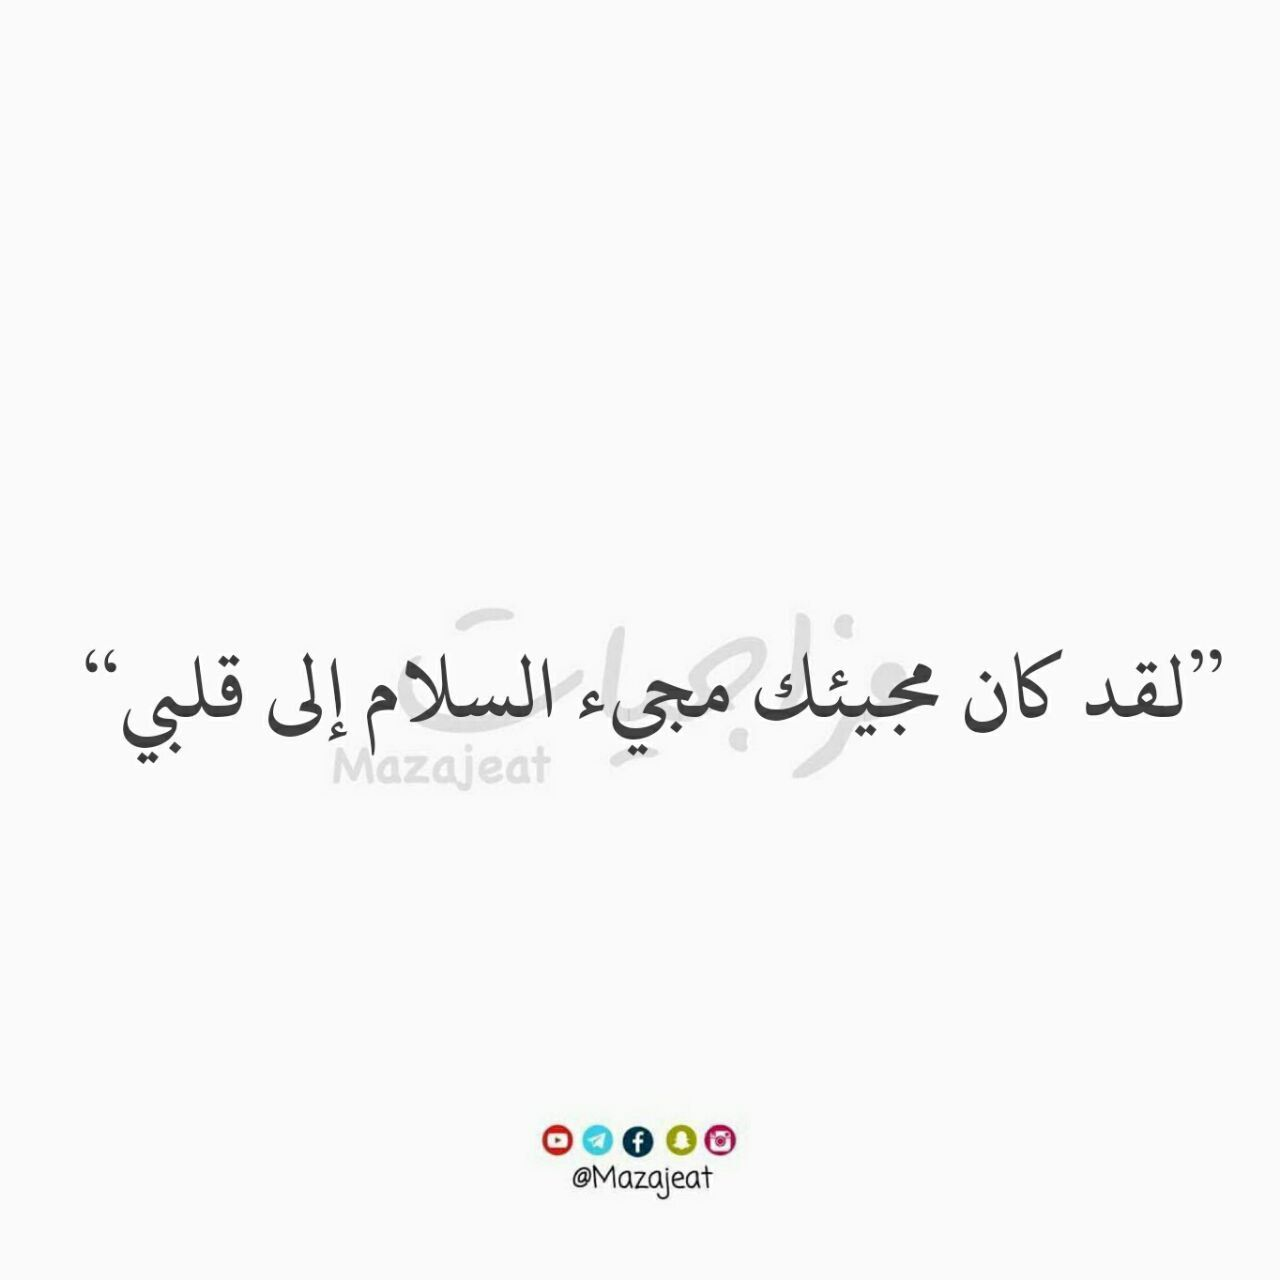 Pin By Asmaa Anwar On قهوه و كلام Sweet Quotes Friends Quotes Arabic Love Quotes